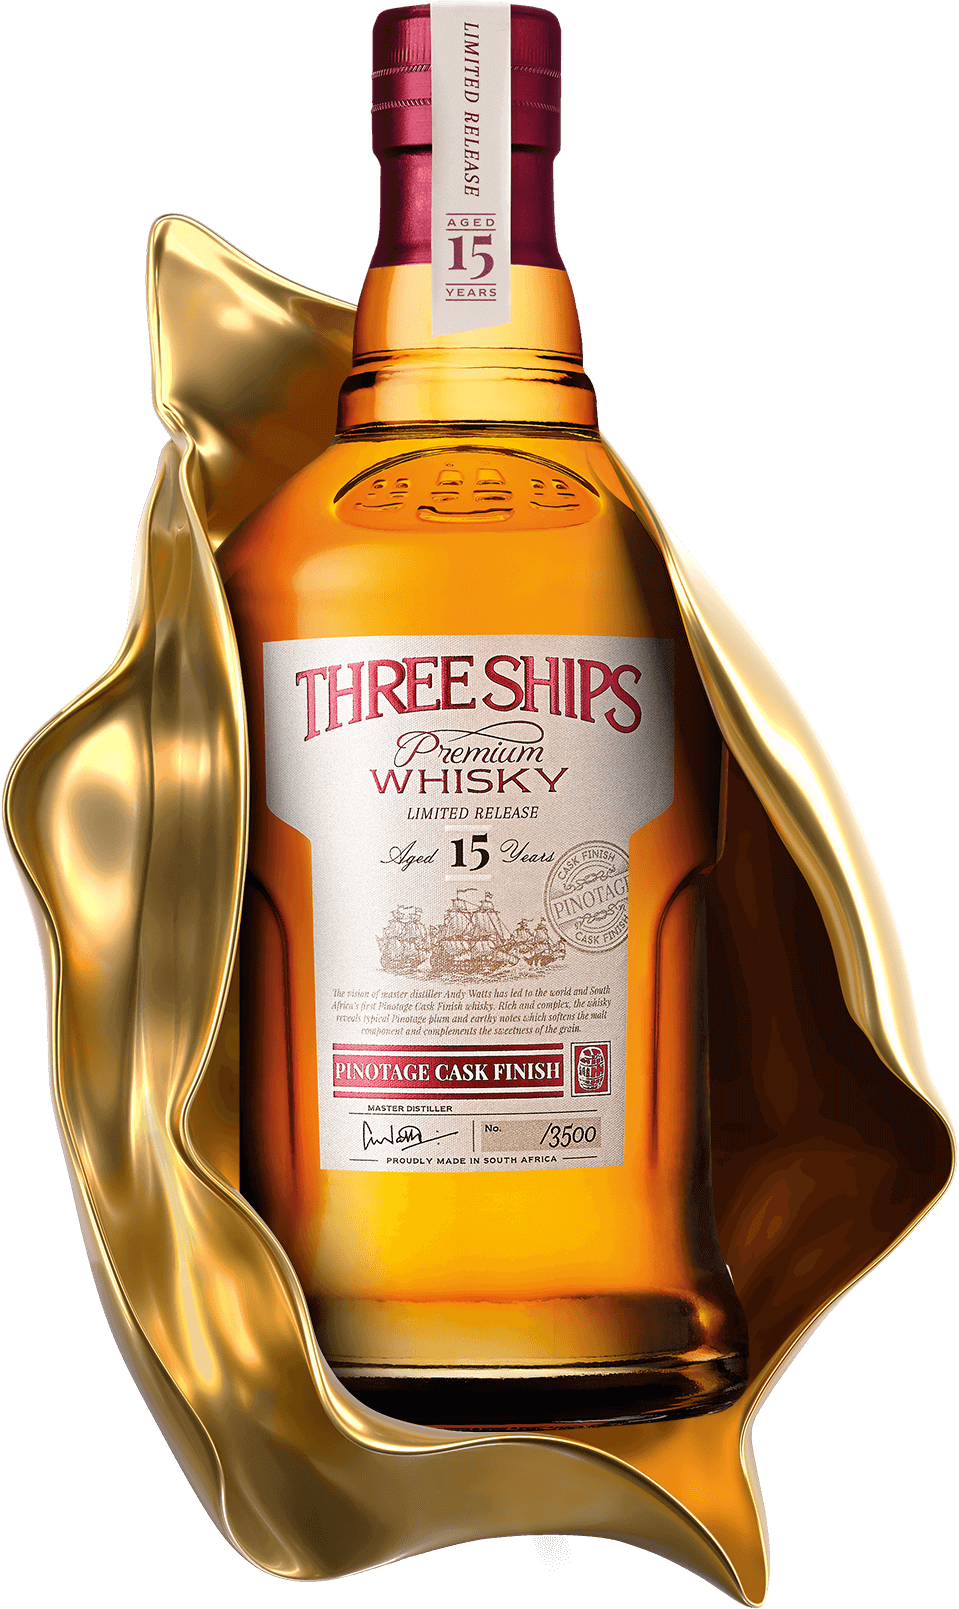 THREE SHIPS WHISKY 15 YEAR OLD PINOTAGE CASK FINISH